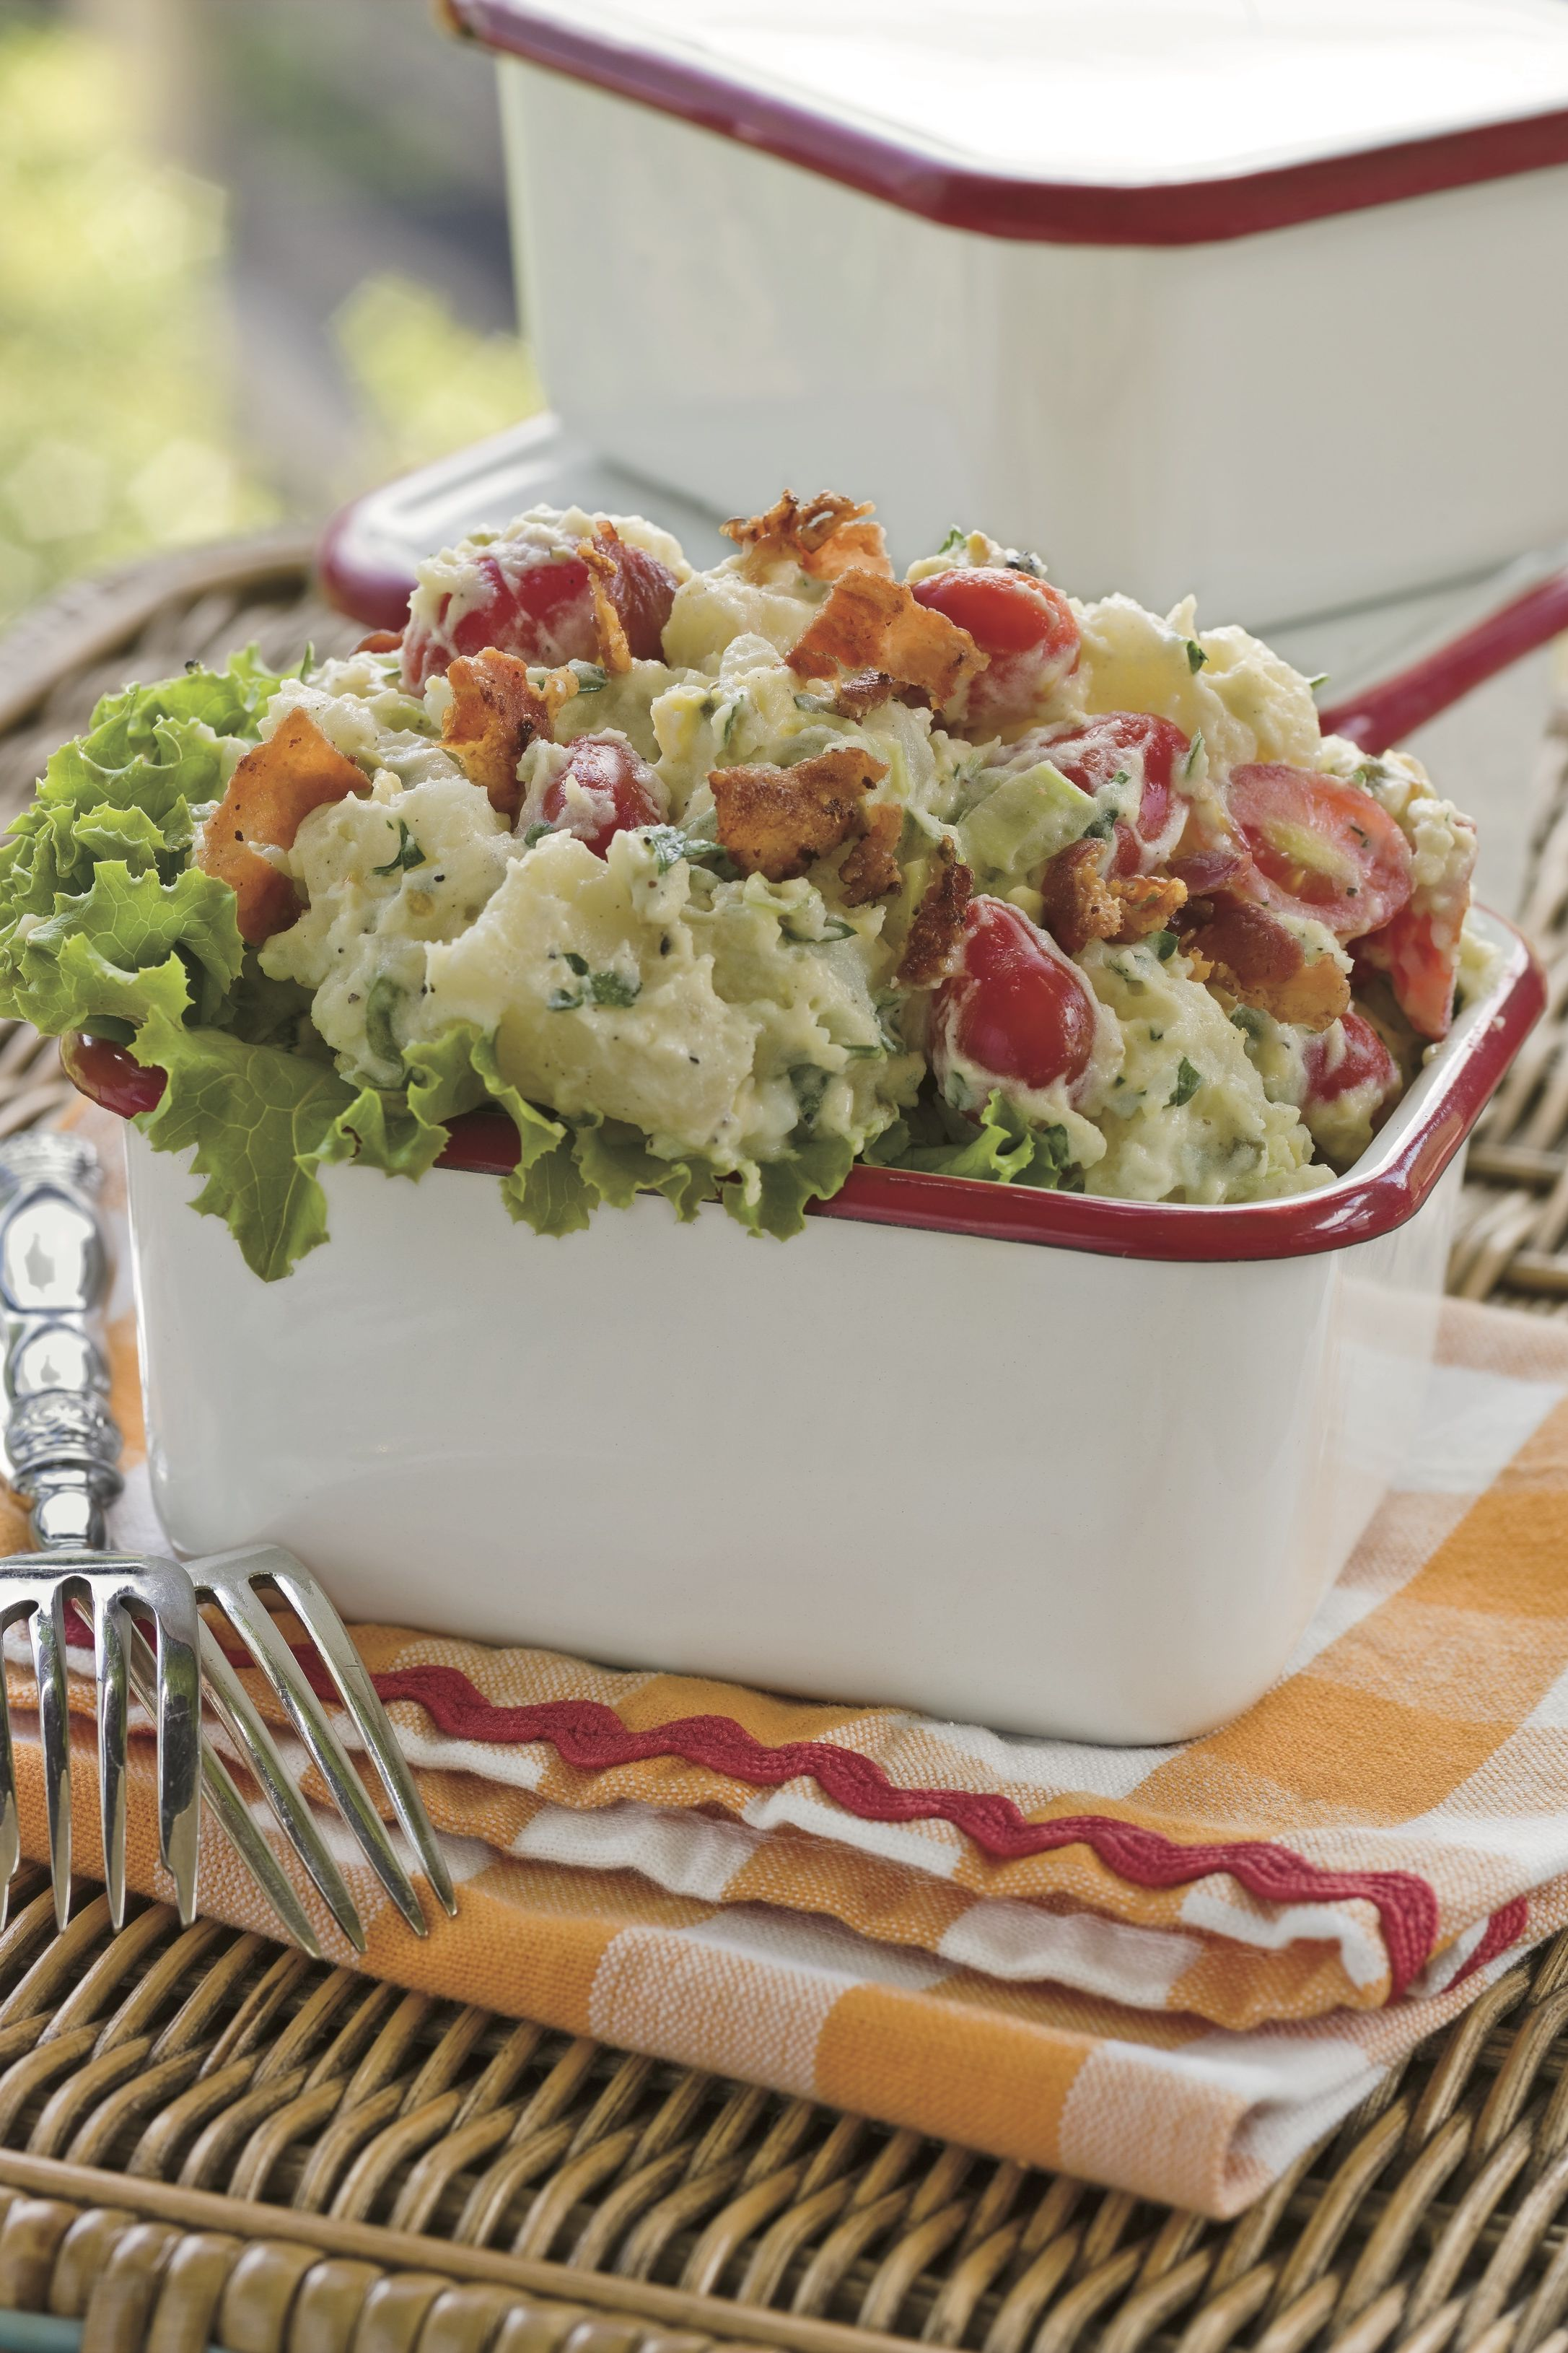 Make The Best Potato Salad With This Secret Ingredient